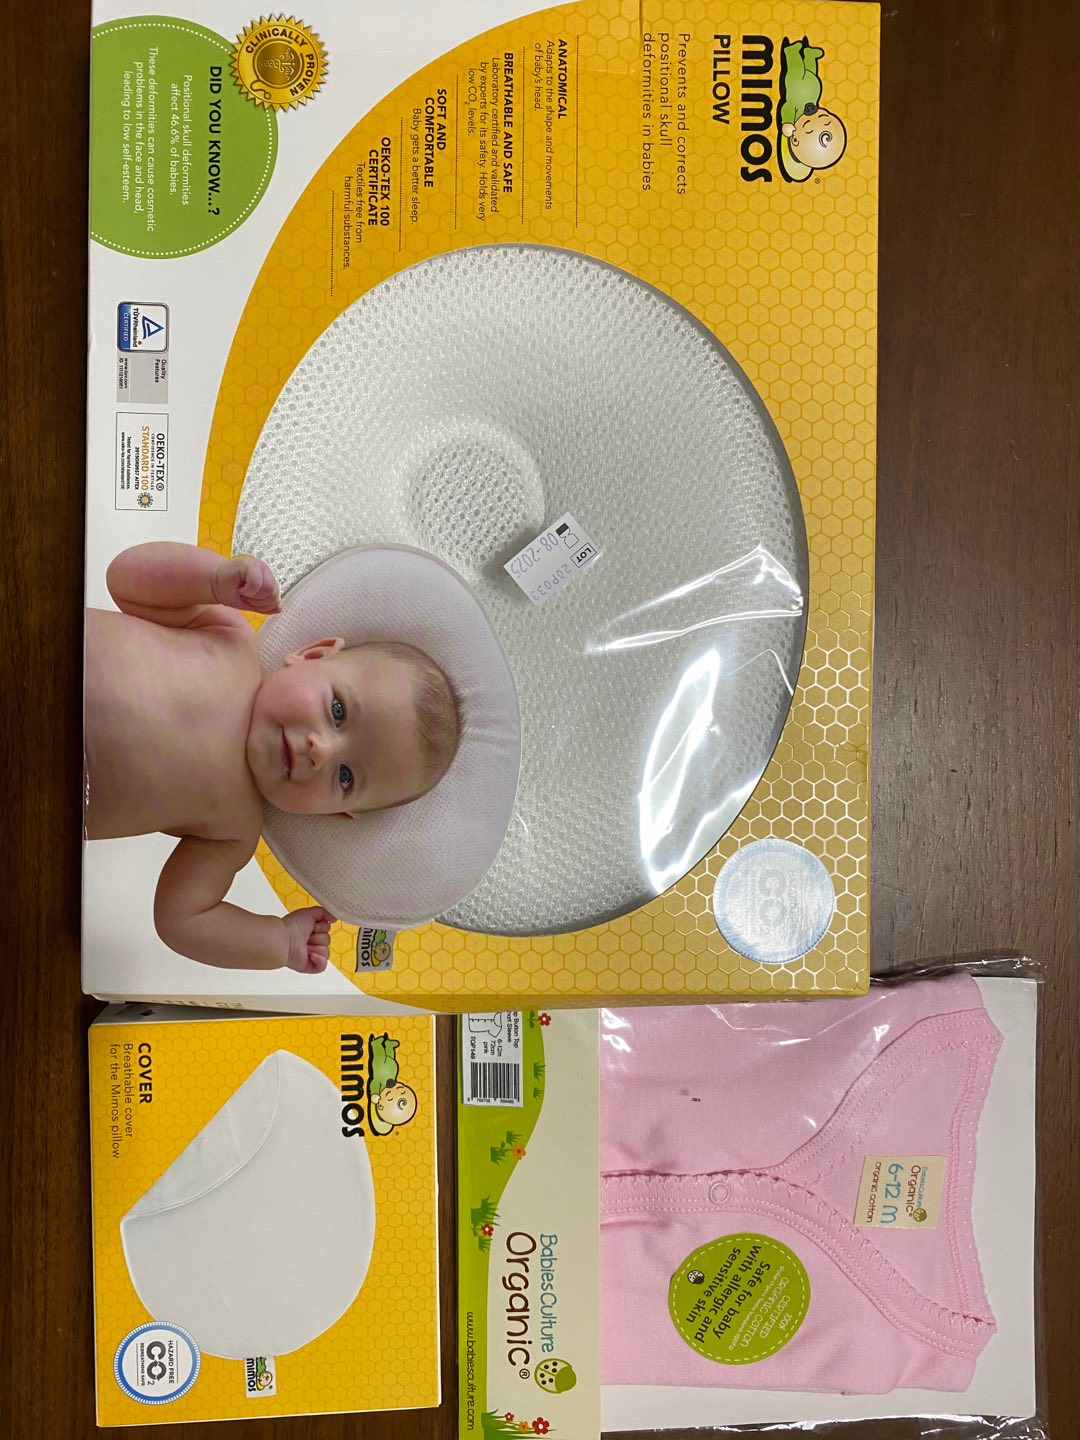 mimos baby pillow size m 6m head size 42 46cm i flat head prevention early treatment